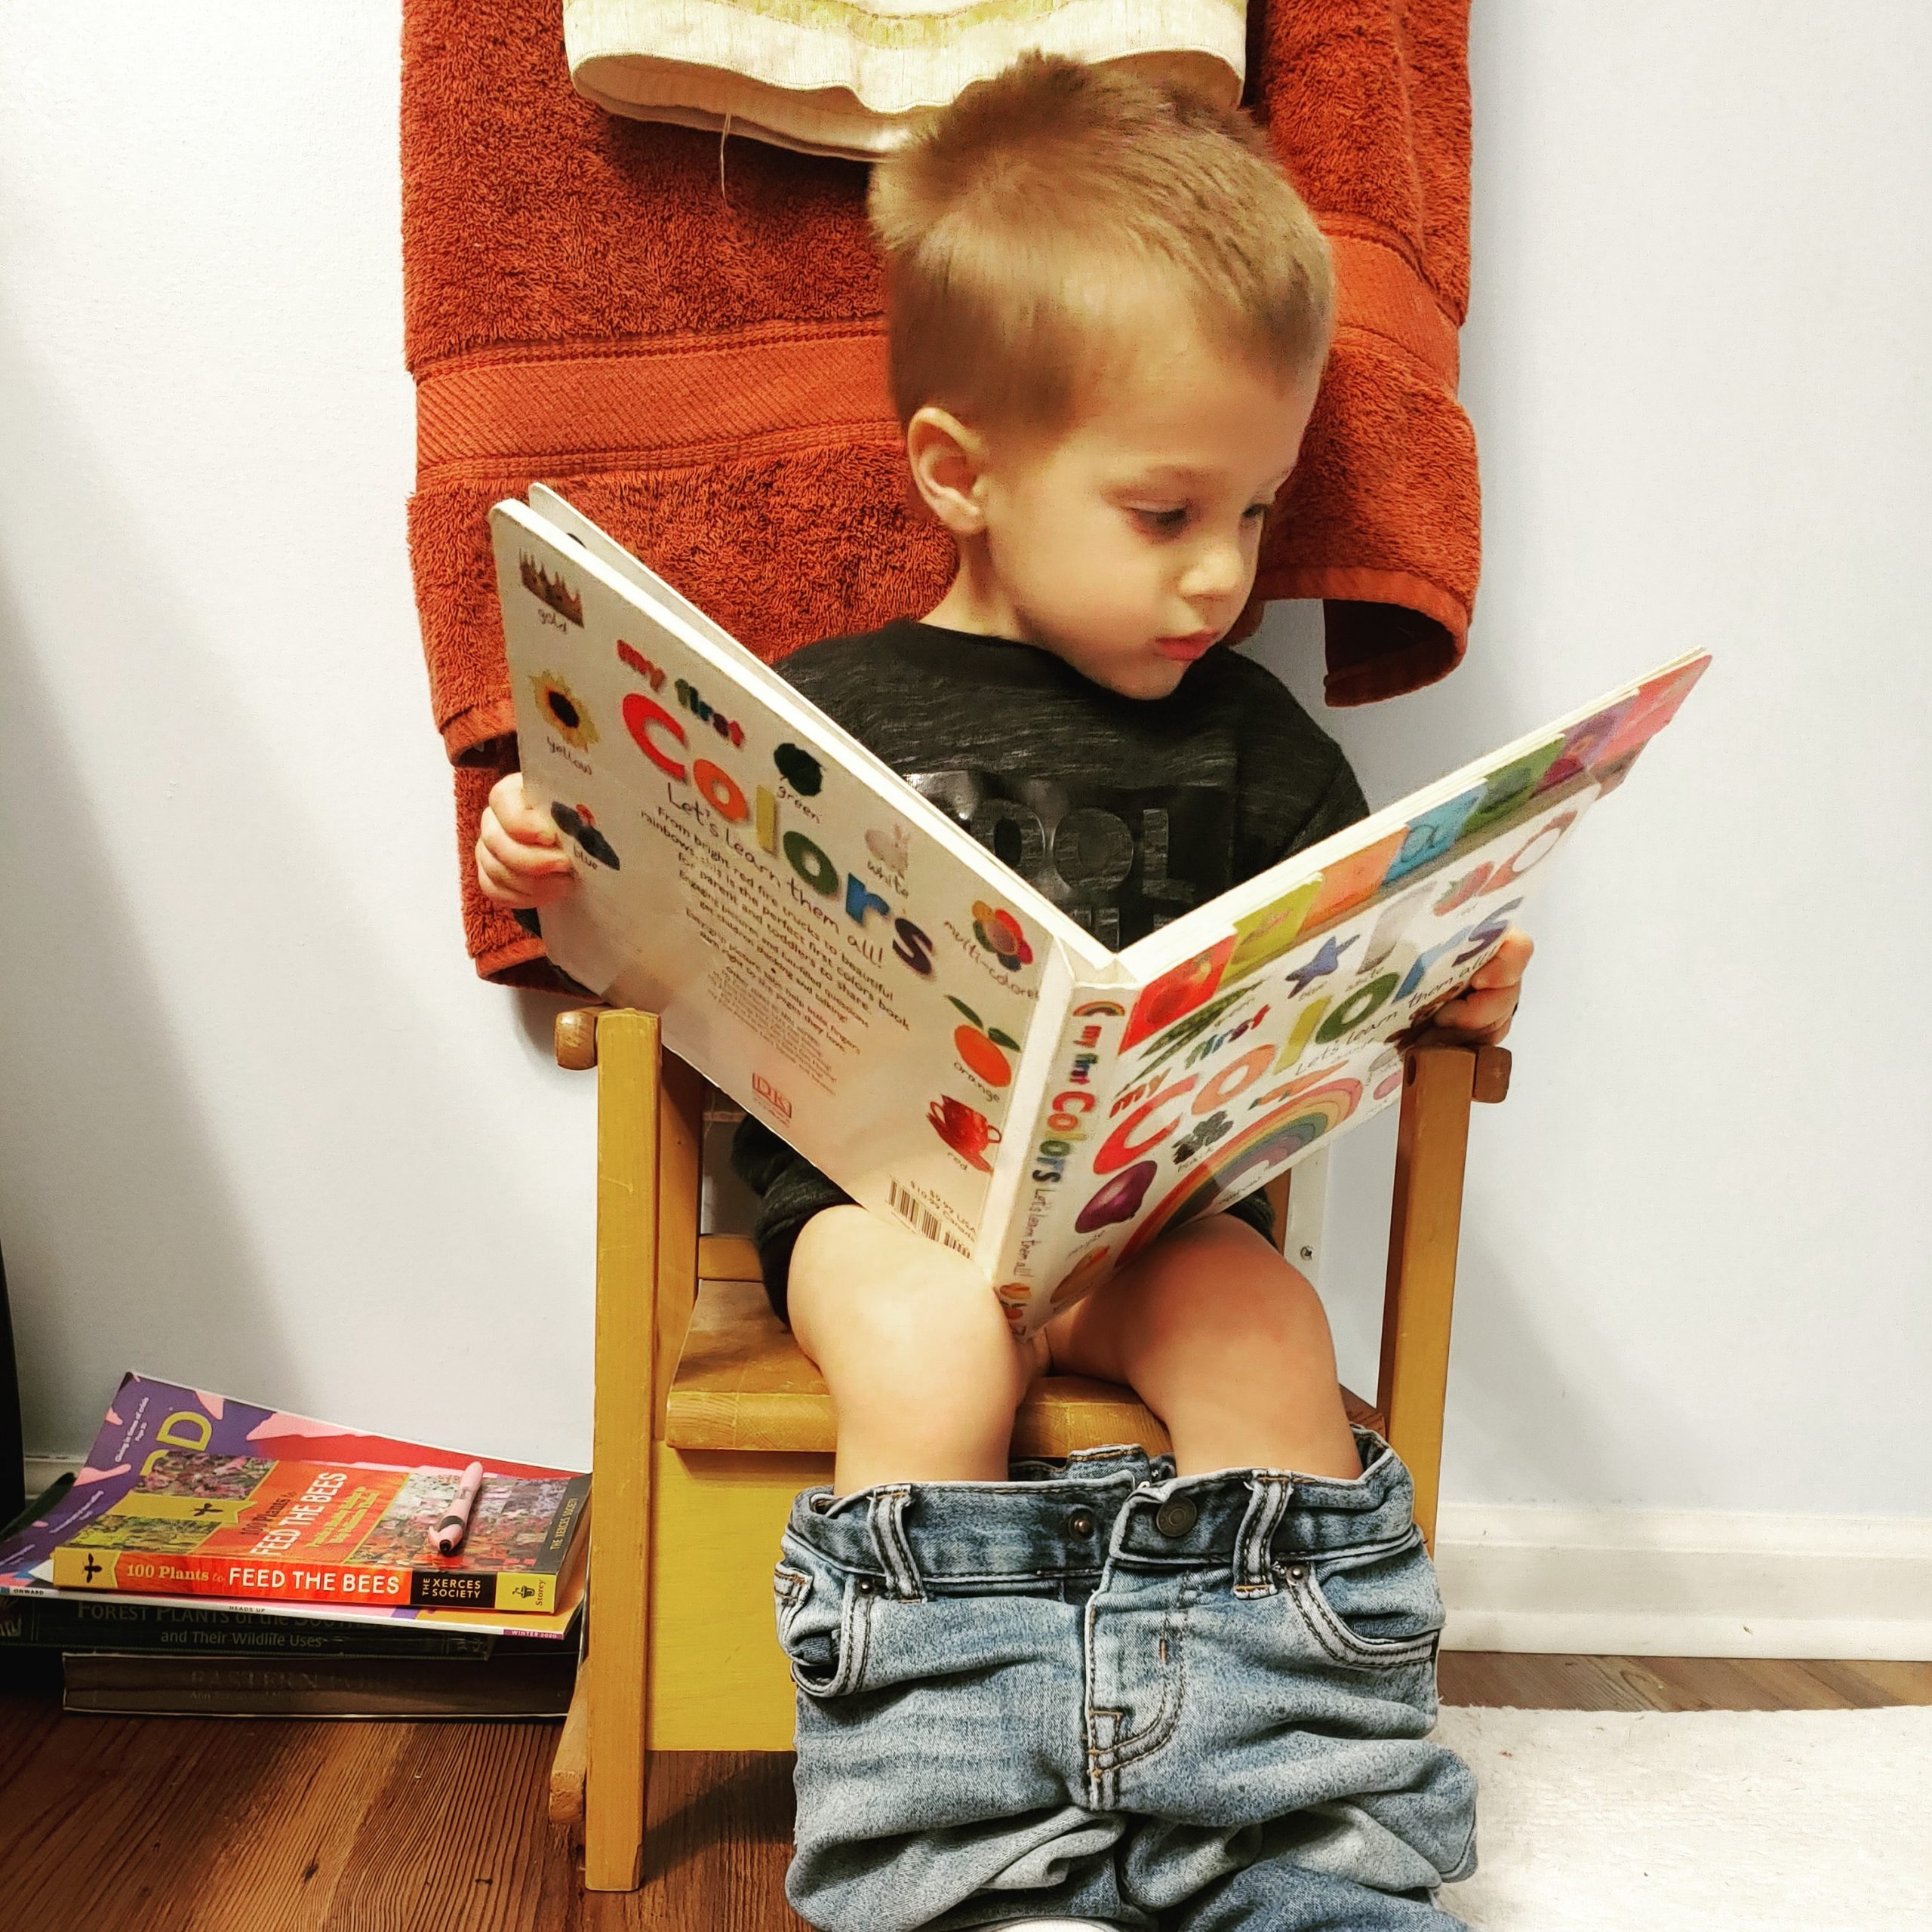 Toddler boy sitting on a potty training chair reading a colorful book